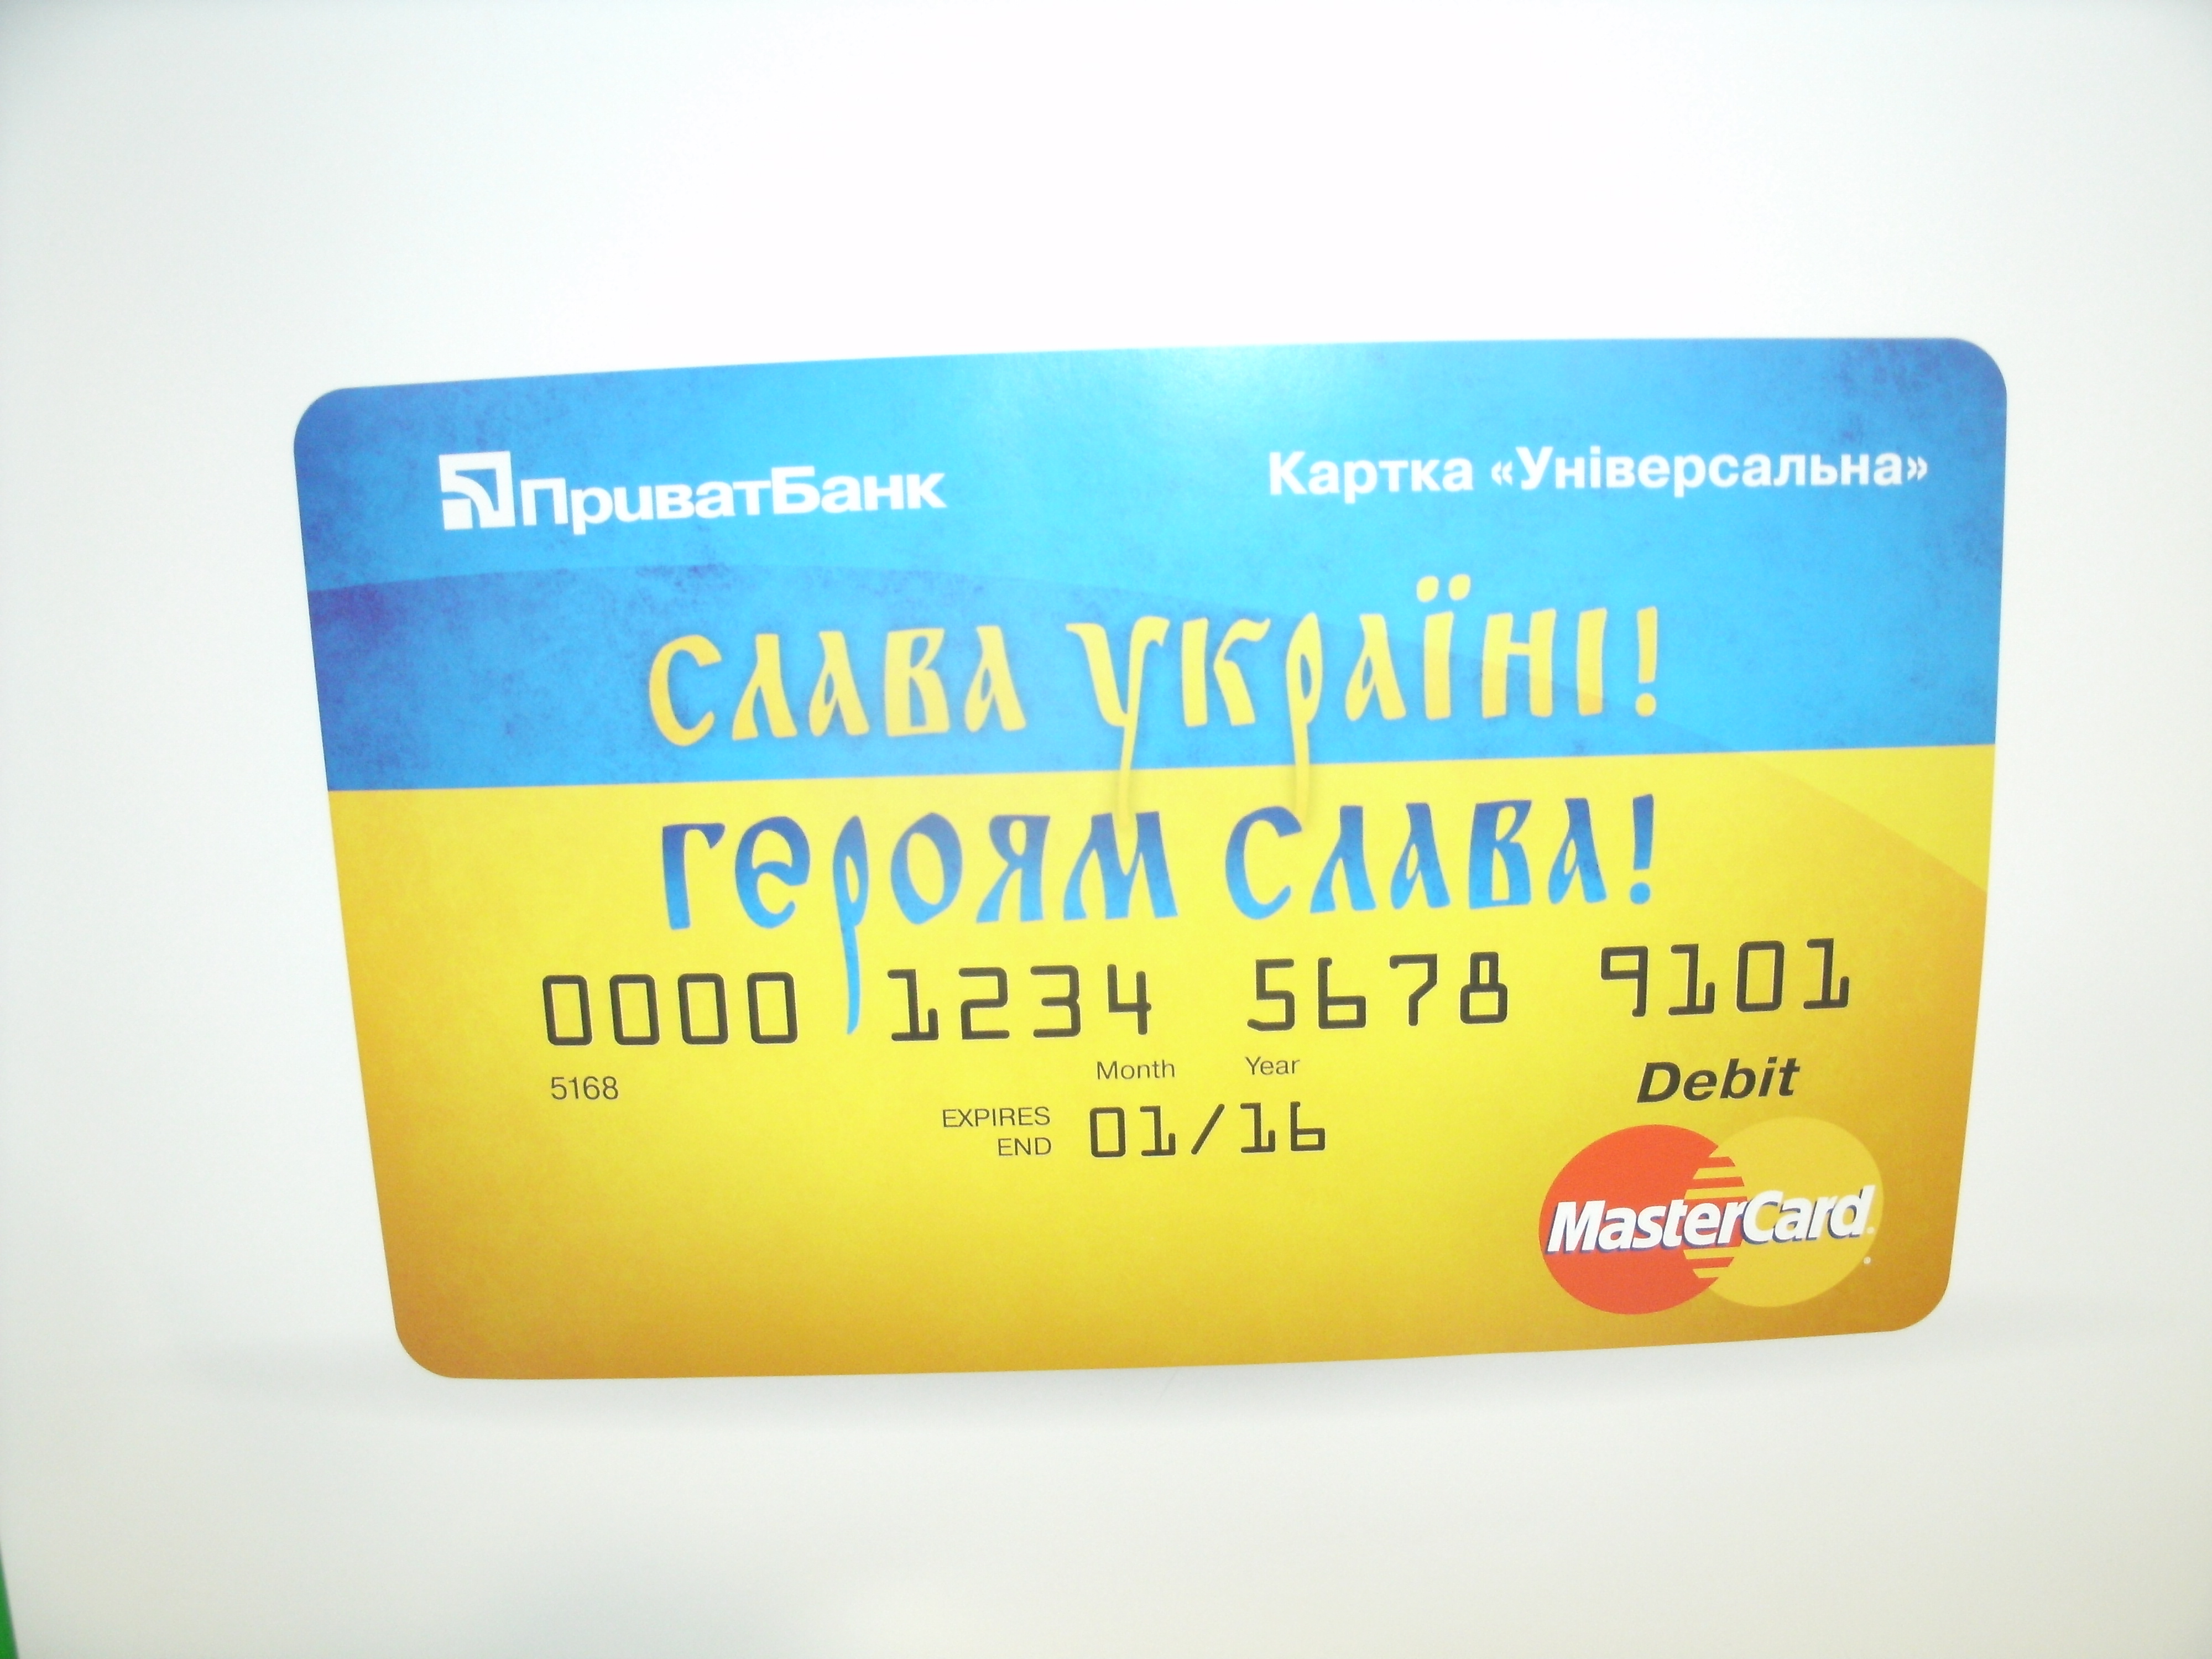 The Revolutionary Mastercard: Whoever said the revolution will not be televised was right. It will be CHARGED.